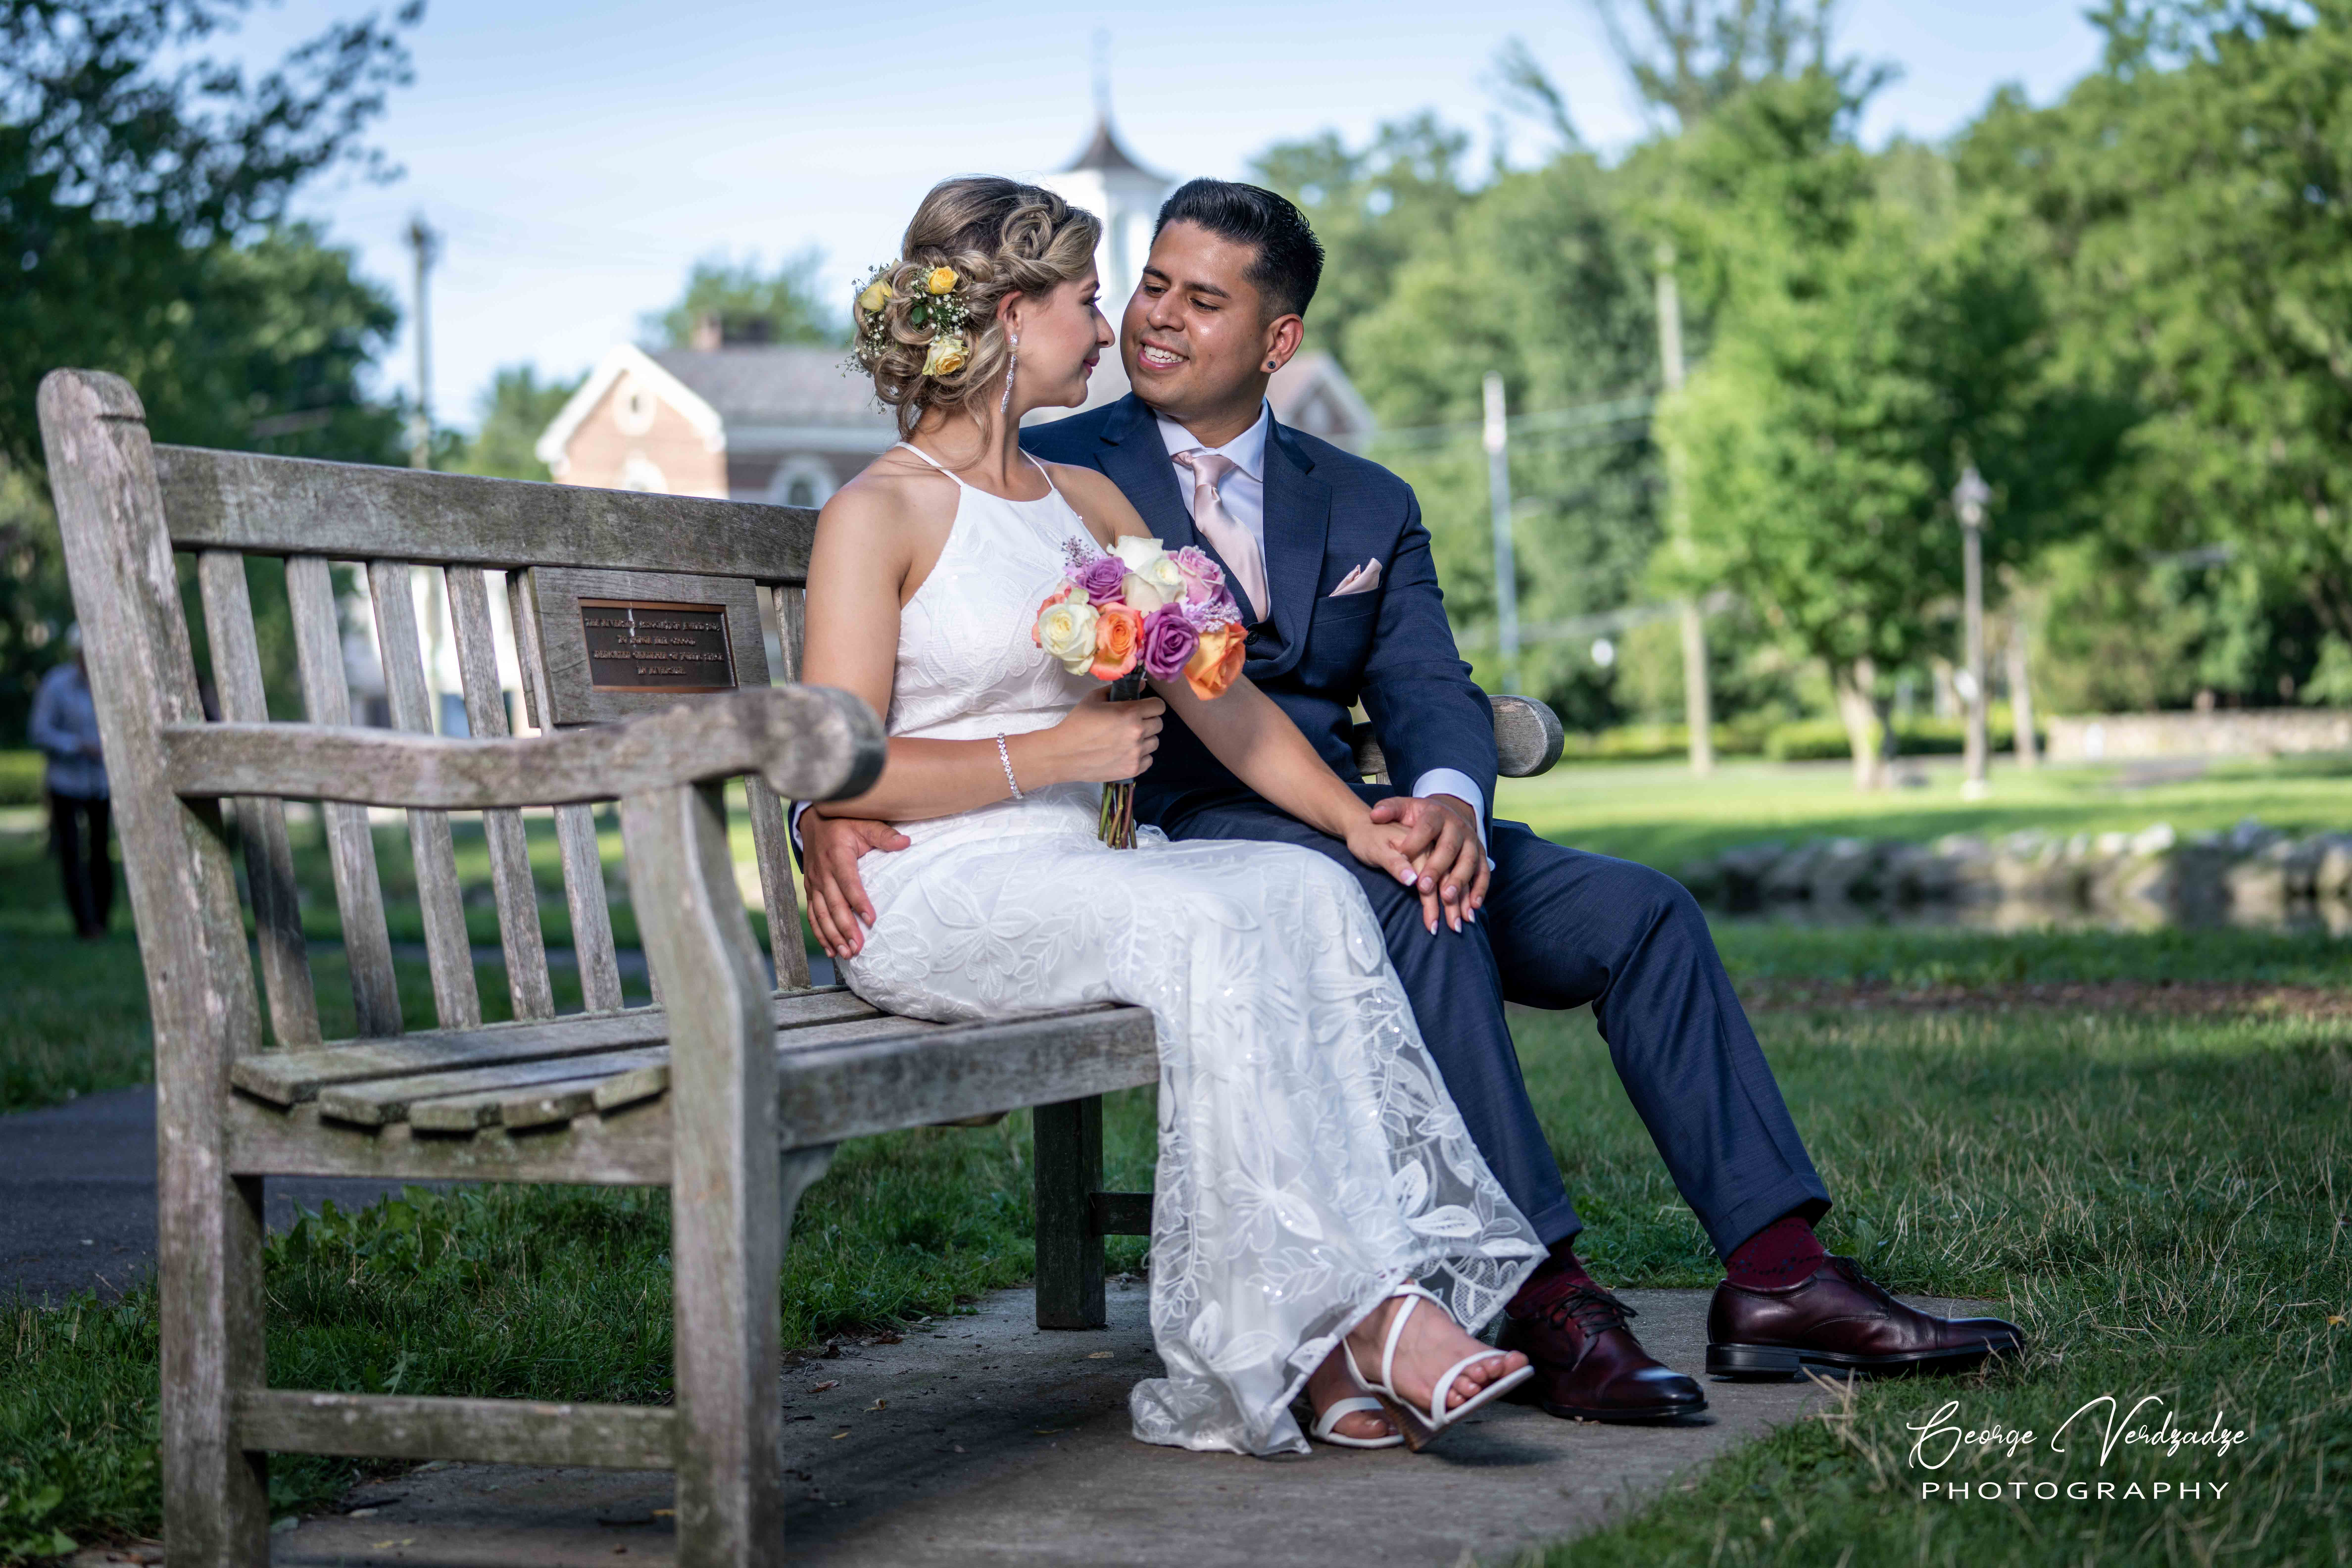 Outdoor wedding photography at Binney Park- Greenwich, CT307